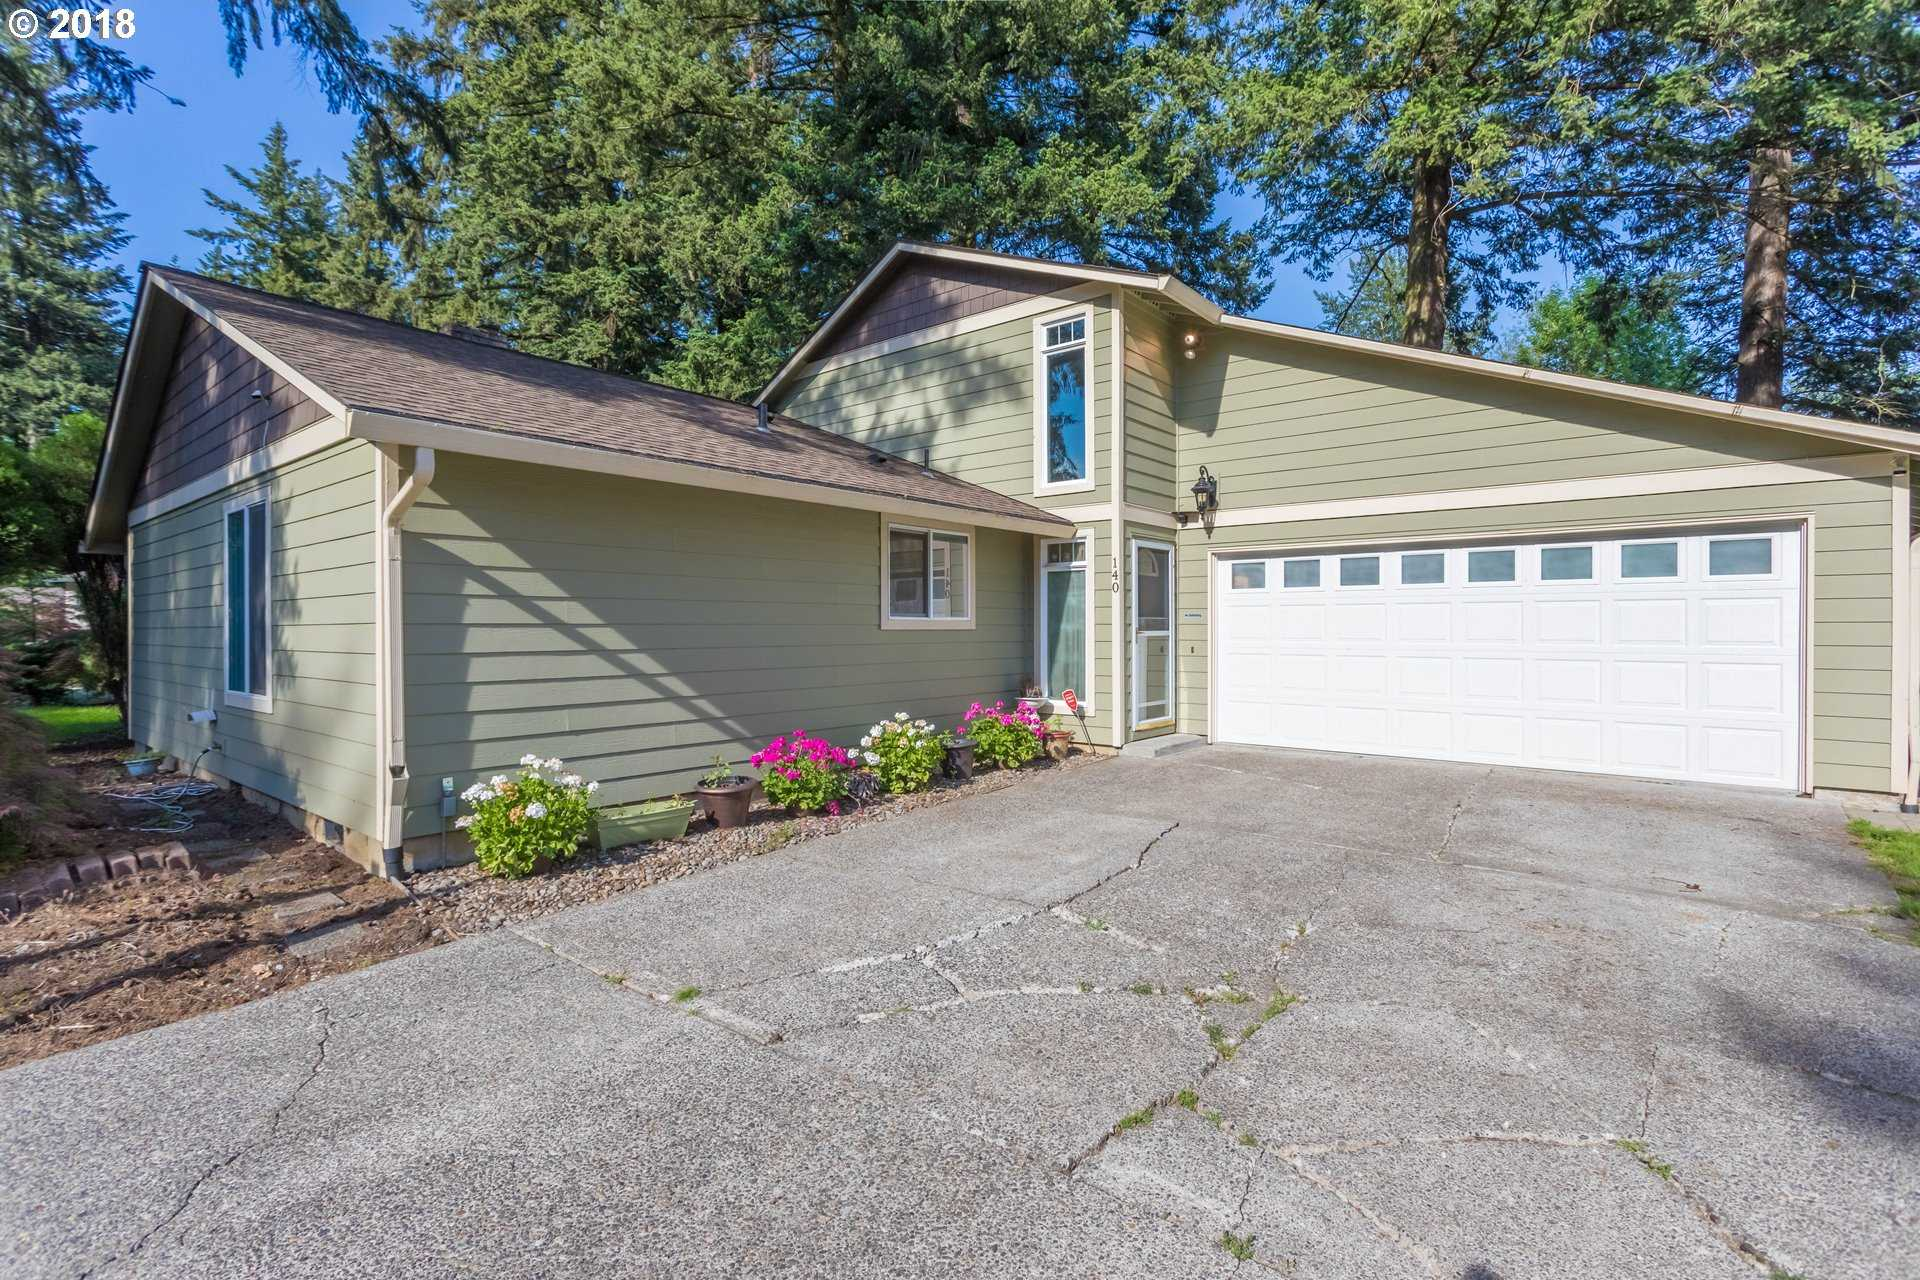 $319,000 - 3Br/2Ba -  for Sale in Gresham